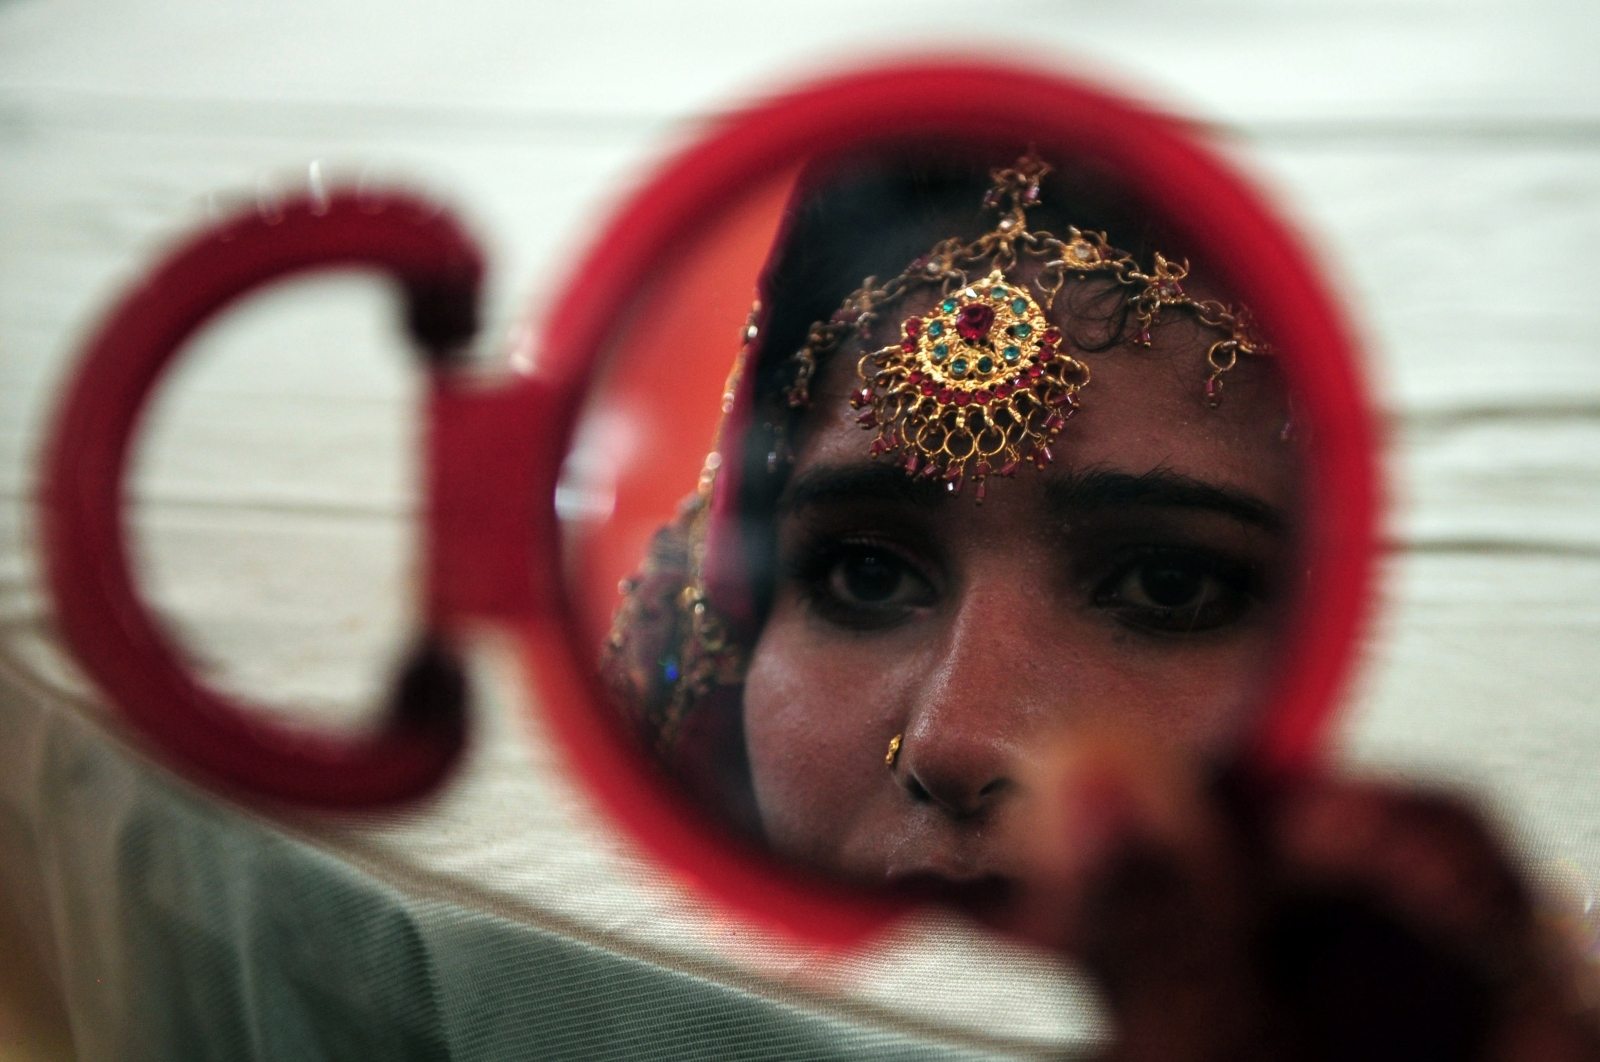 Police raided the ceremony of a ten-year-old girl in Pakistan who was about to be married to a 50-year-old